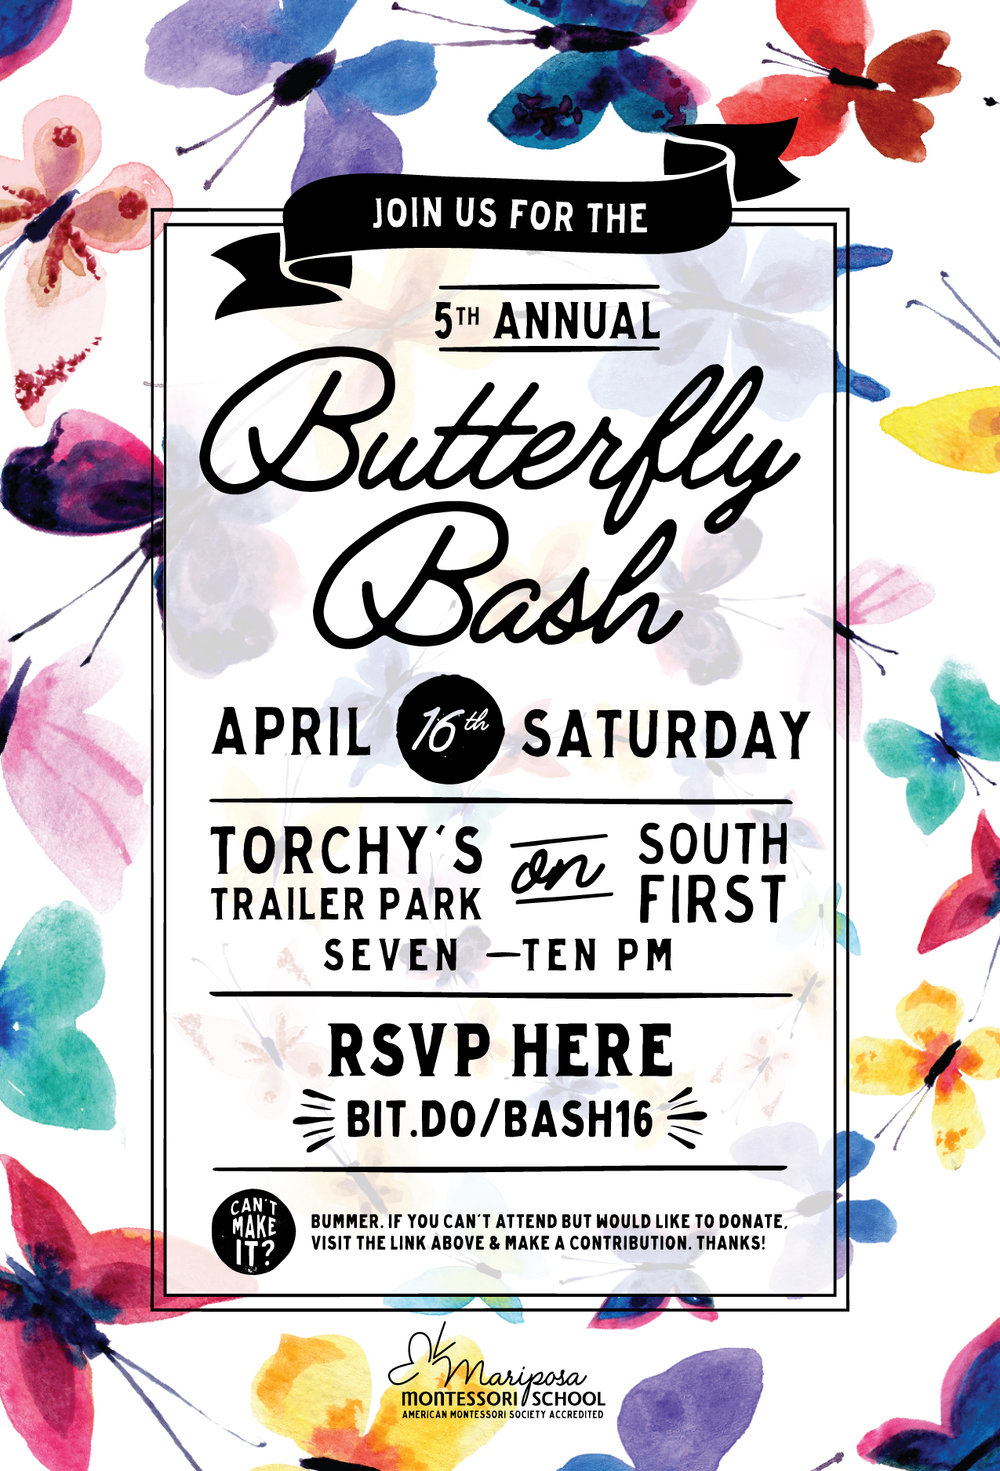 Mariposa-ButterflyBash-SavetheDate-Back-01.jpg